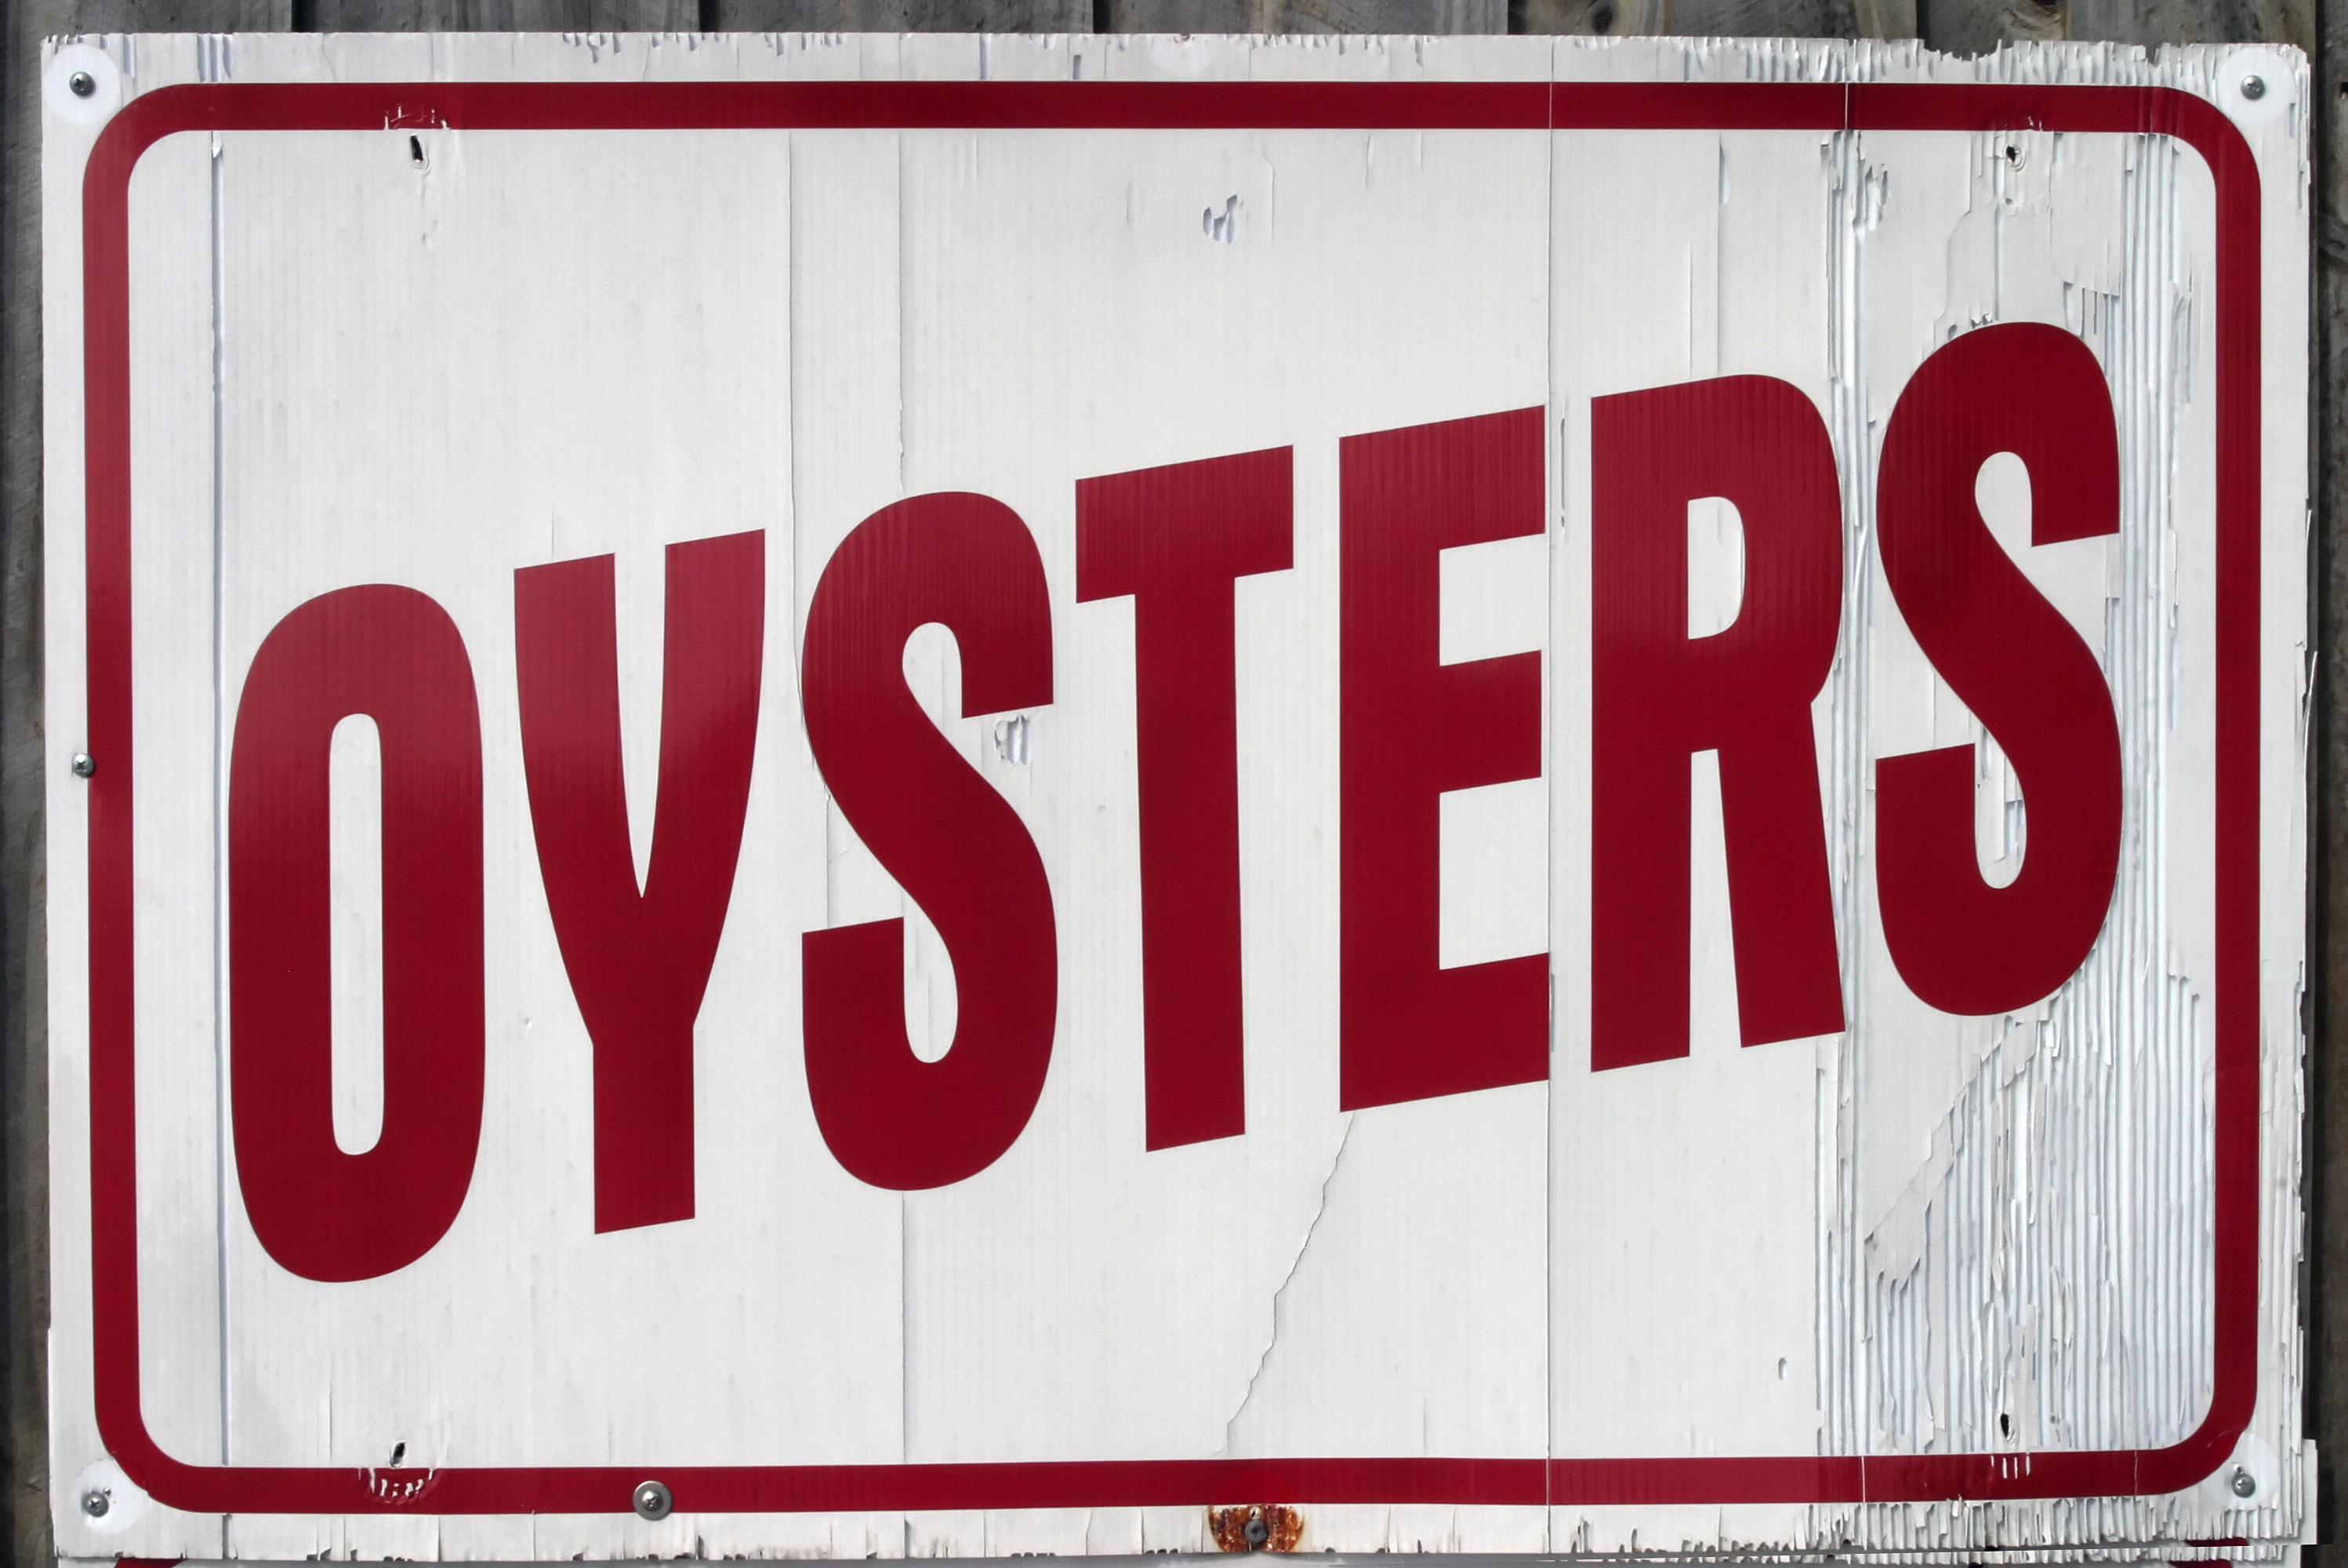 $1.00 OYSTERS